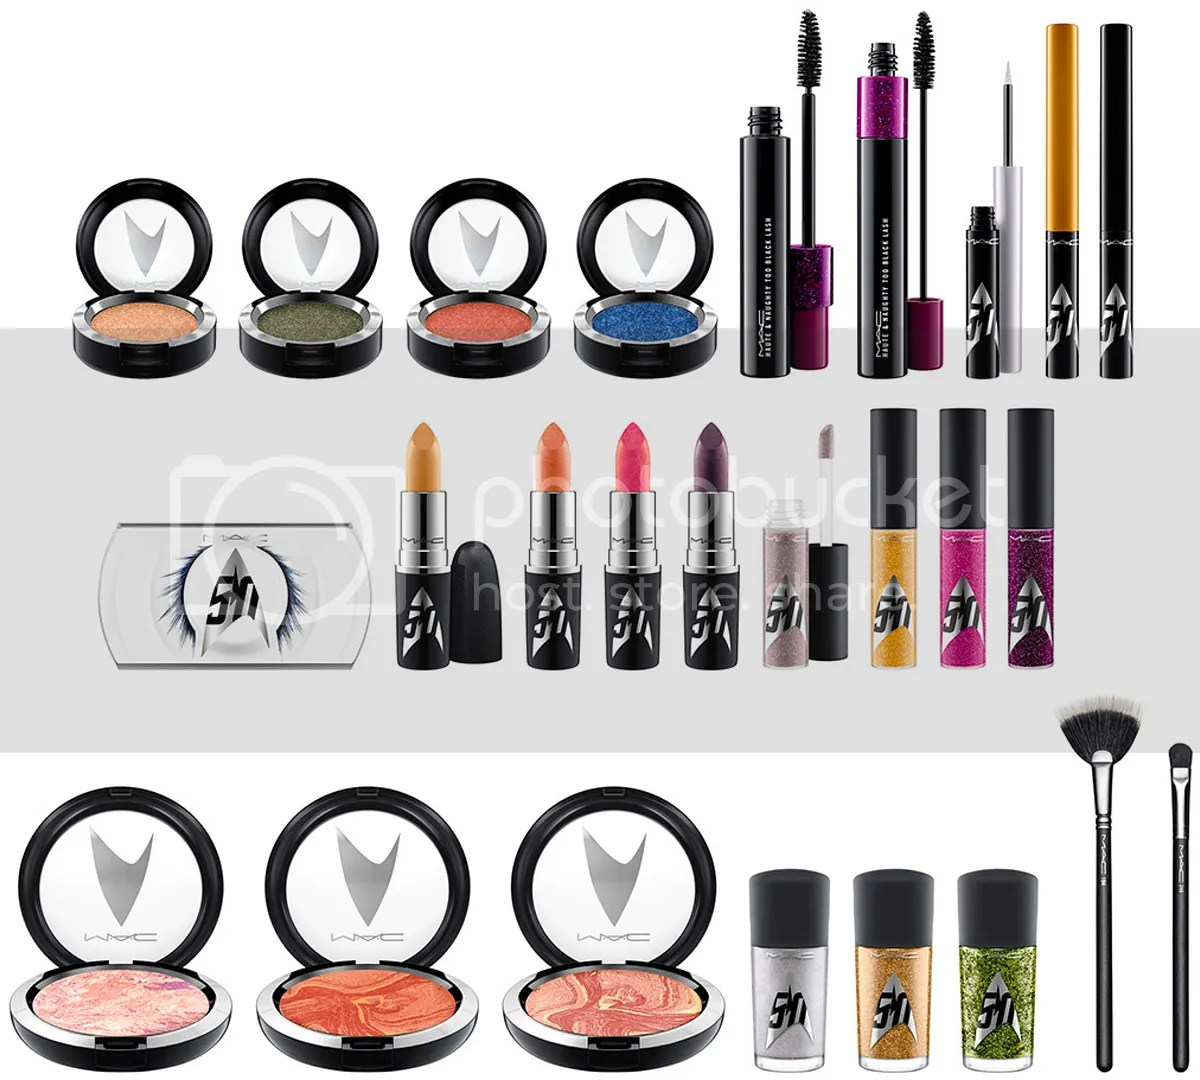 MAC, Star Trek, Fall 2016 collection